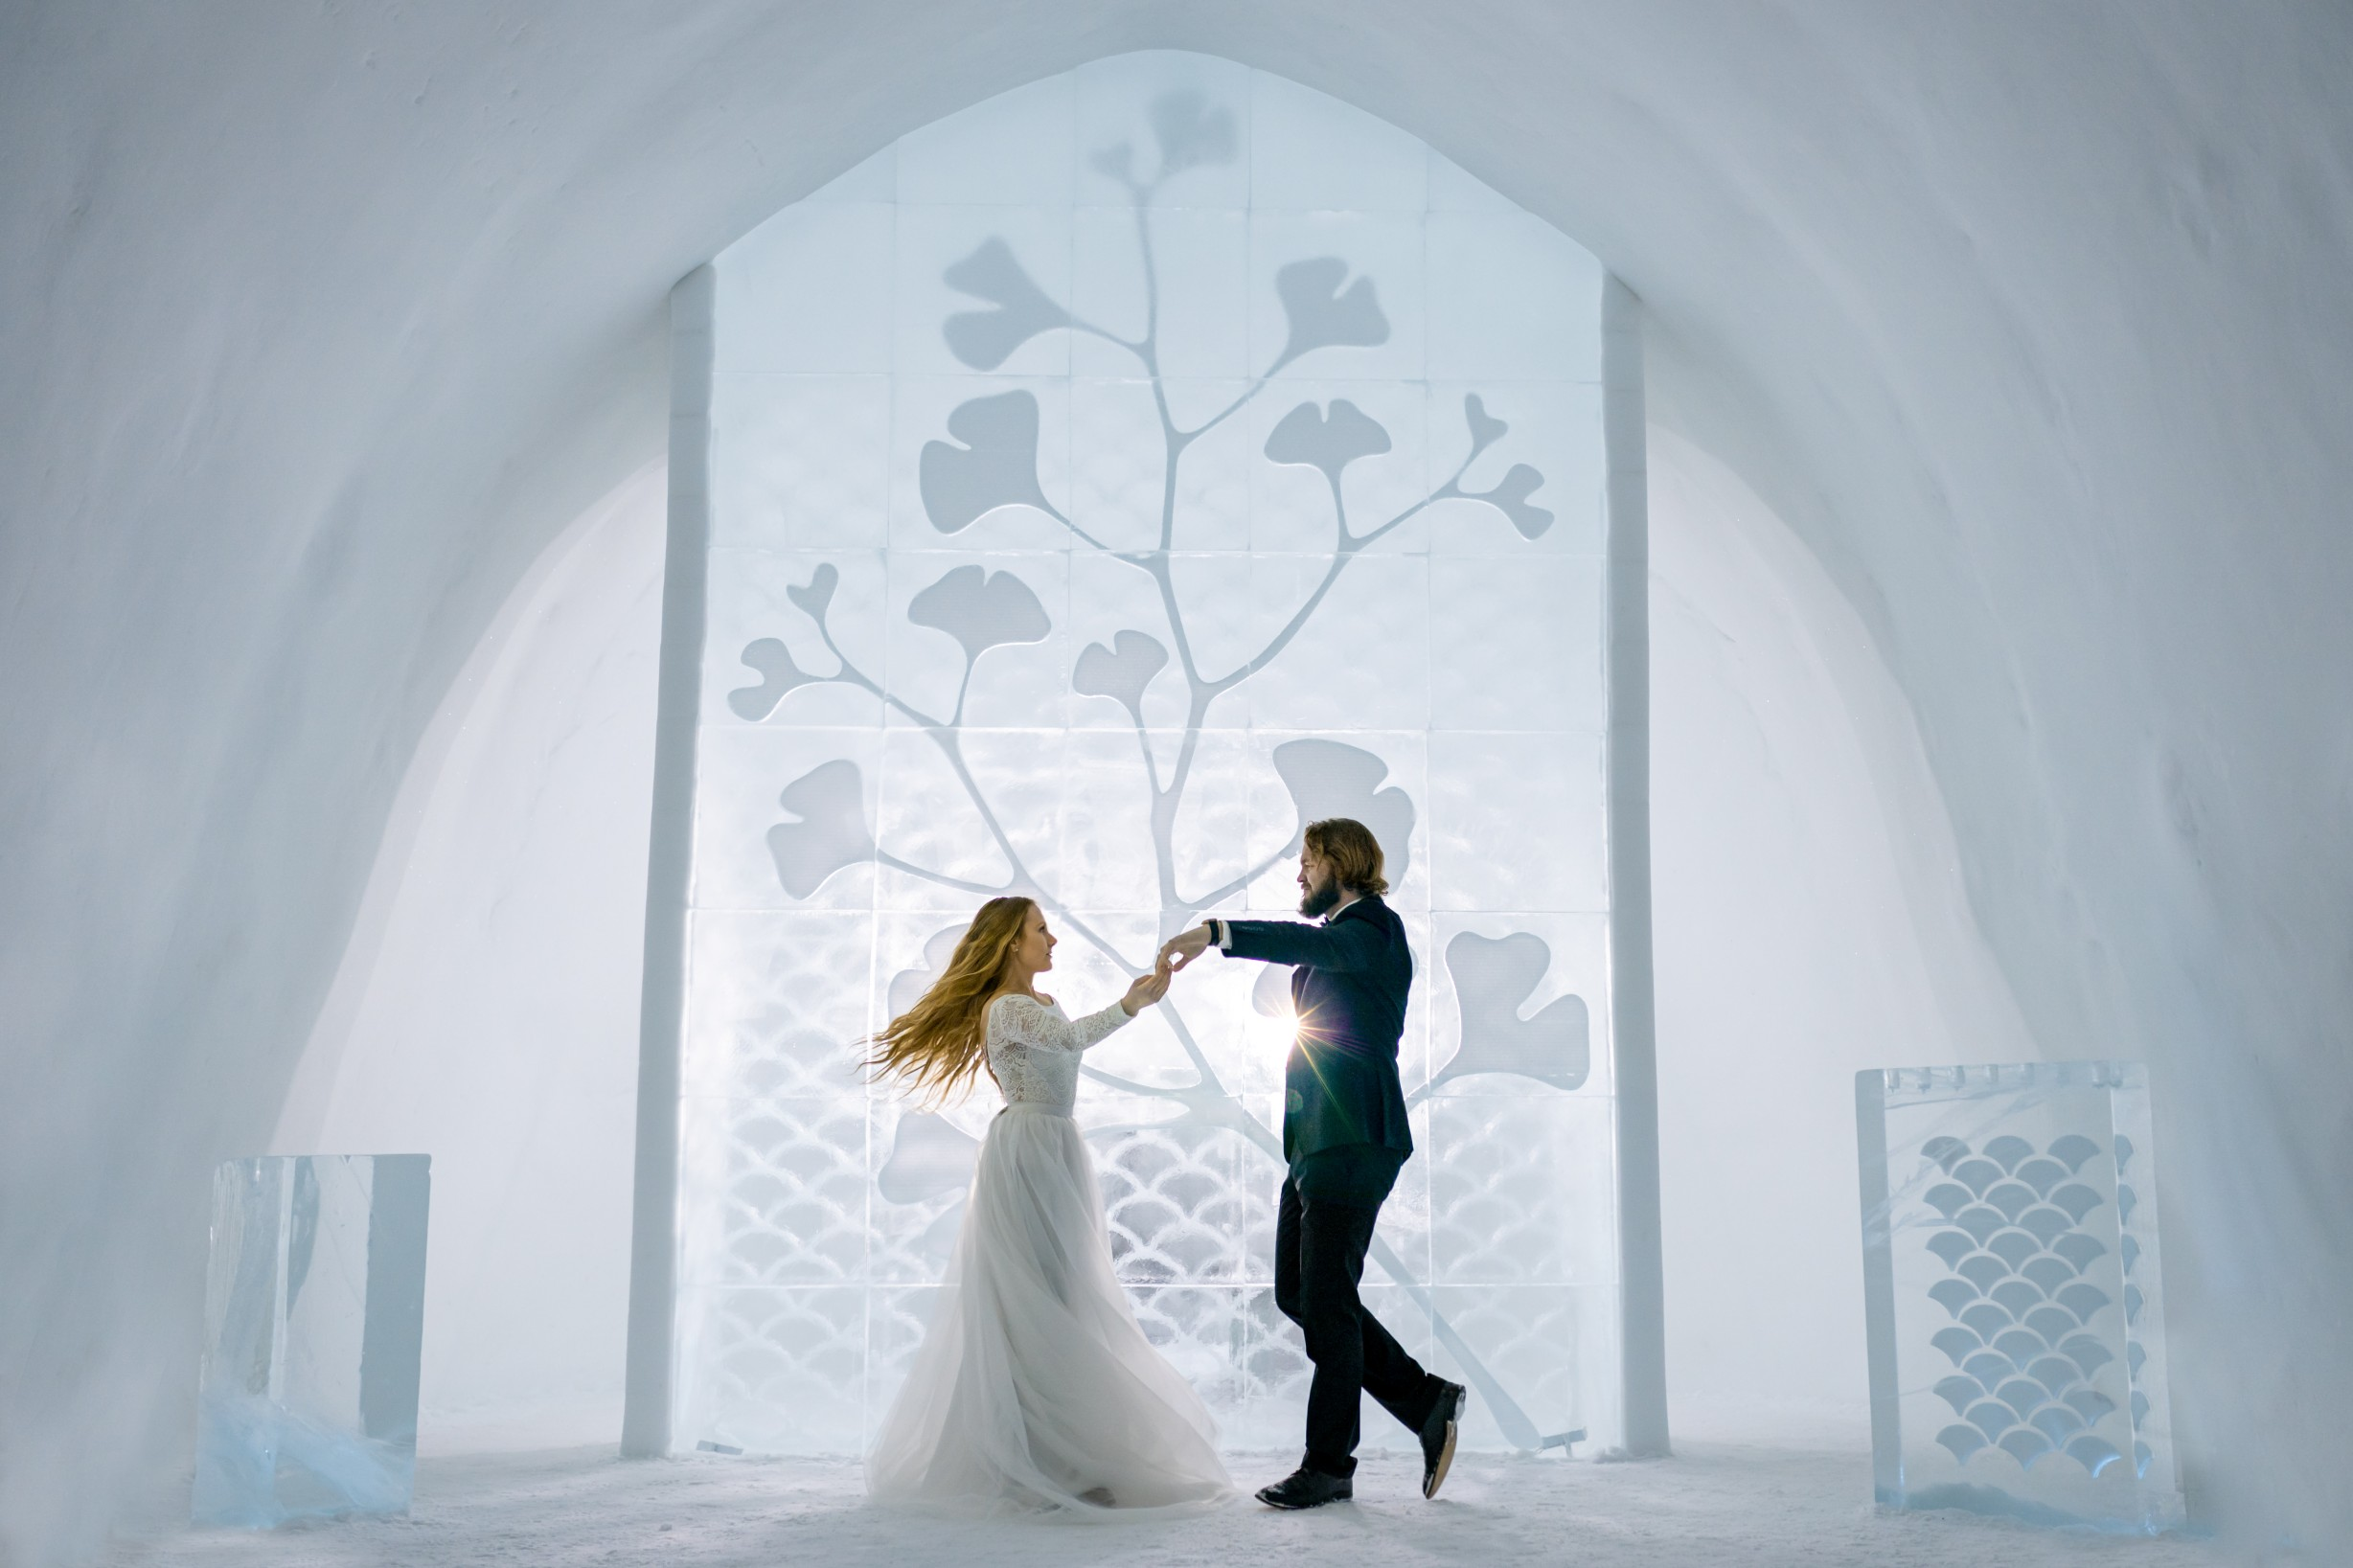 winter wedding at icehotel sweden - cinematic wedding photography - ice wedding - elopement in sweden - creative wedding photographer - unconventional wedding - alternative wedding - unique wedding - artistic wedding - bride and groom dancing